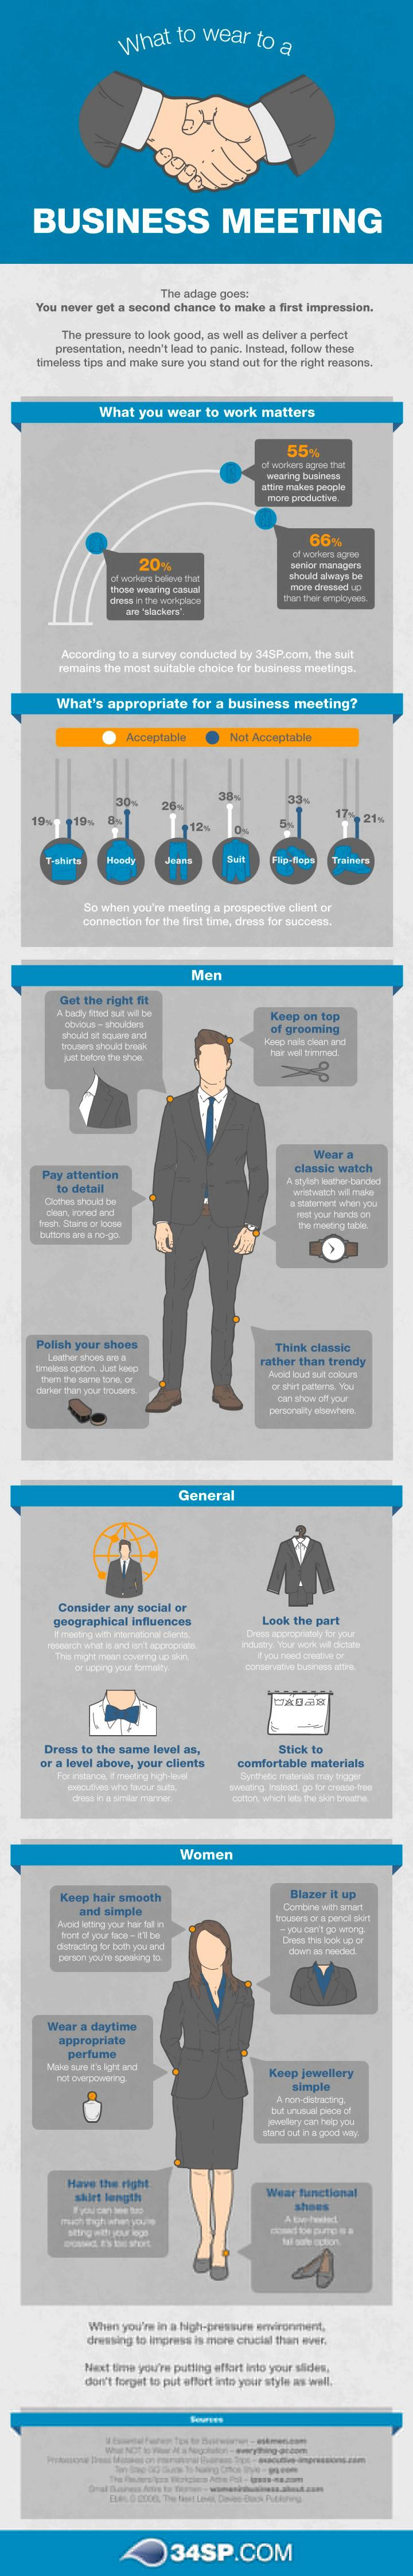 what-to-wear-to-a-business-meeting